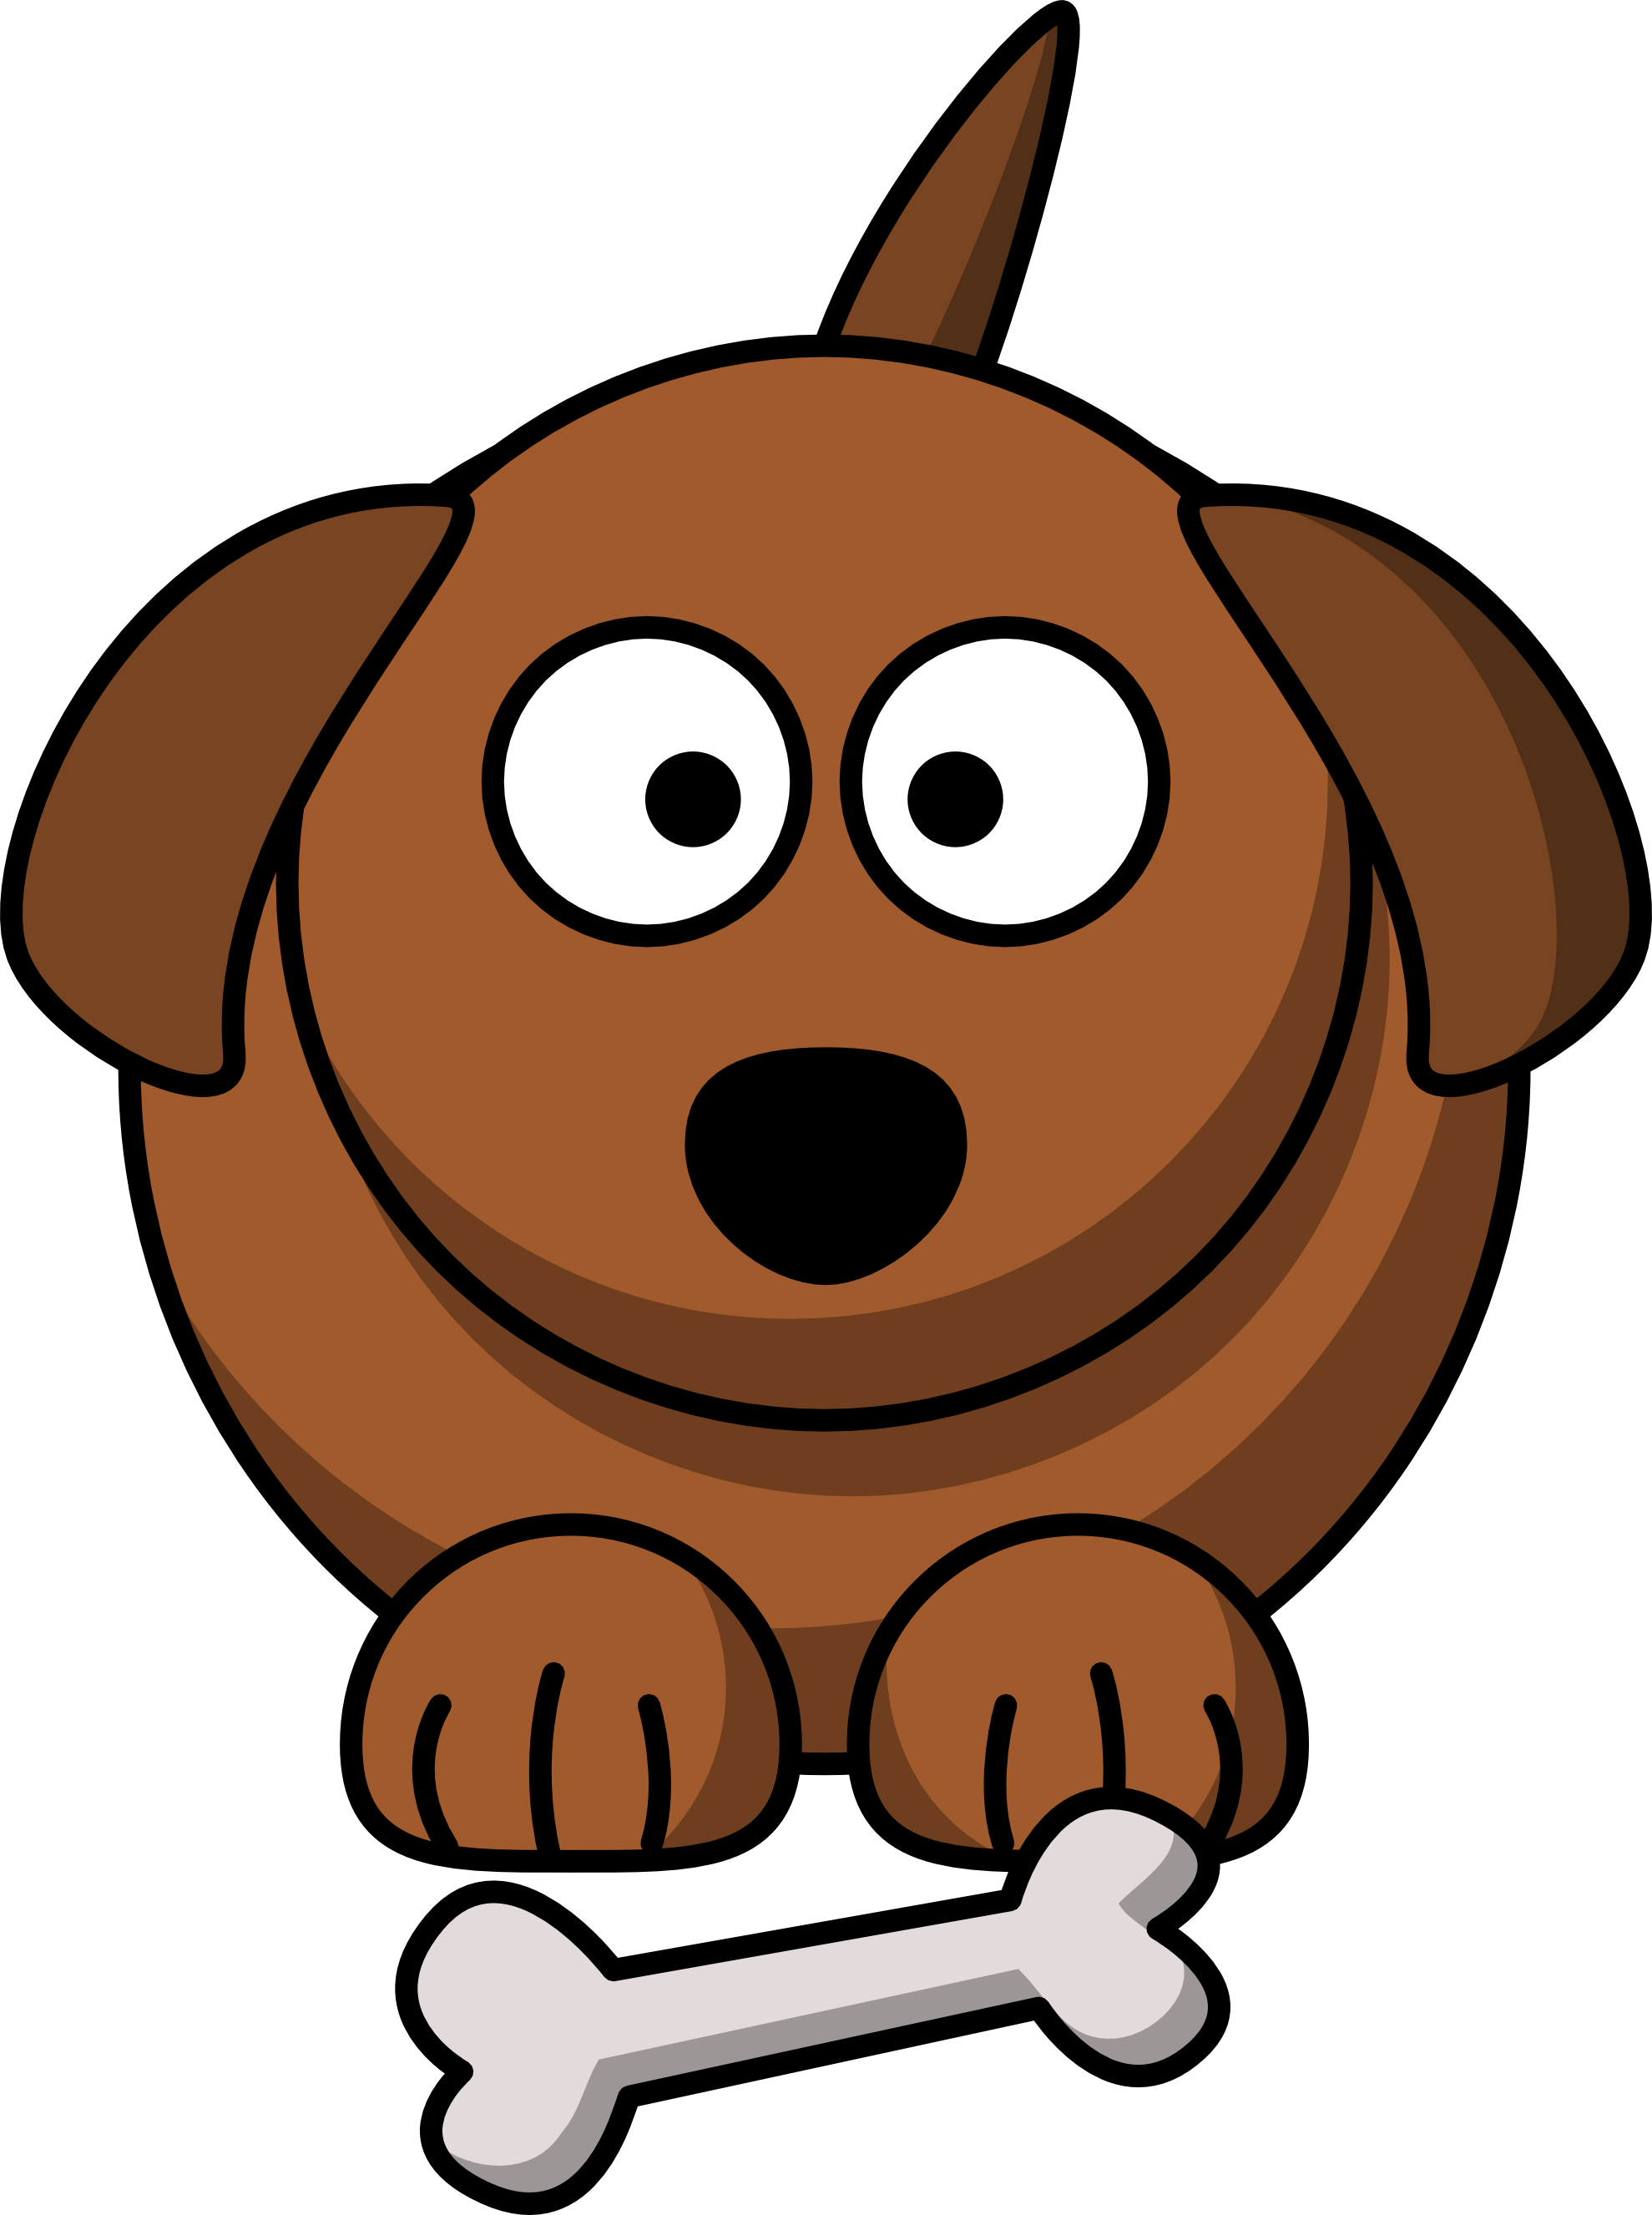 ... Dog toy clip art free clipart images-... Dog toy clip art free clipart images - Cliparting clipartall.com ...-19